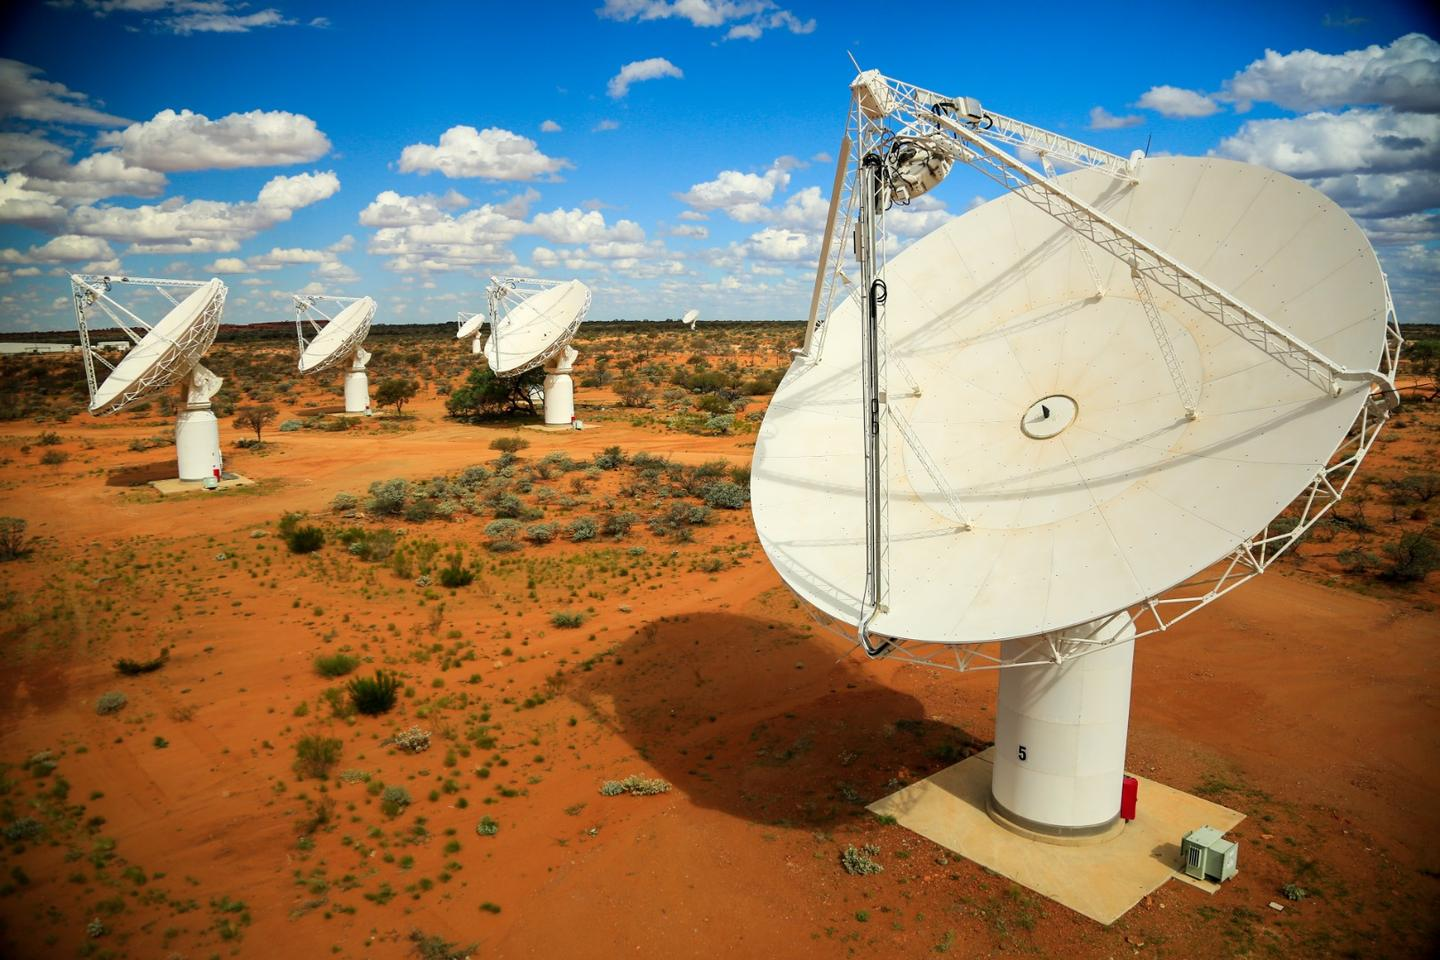 By measuring the time differences between when a signal washes over each telescope in theASKAP array, astronomers can precisely calculate where the signal originated